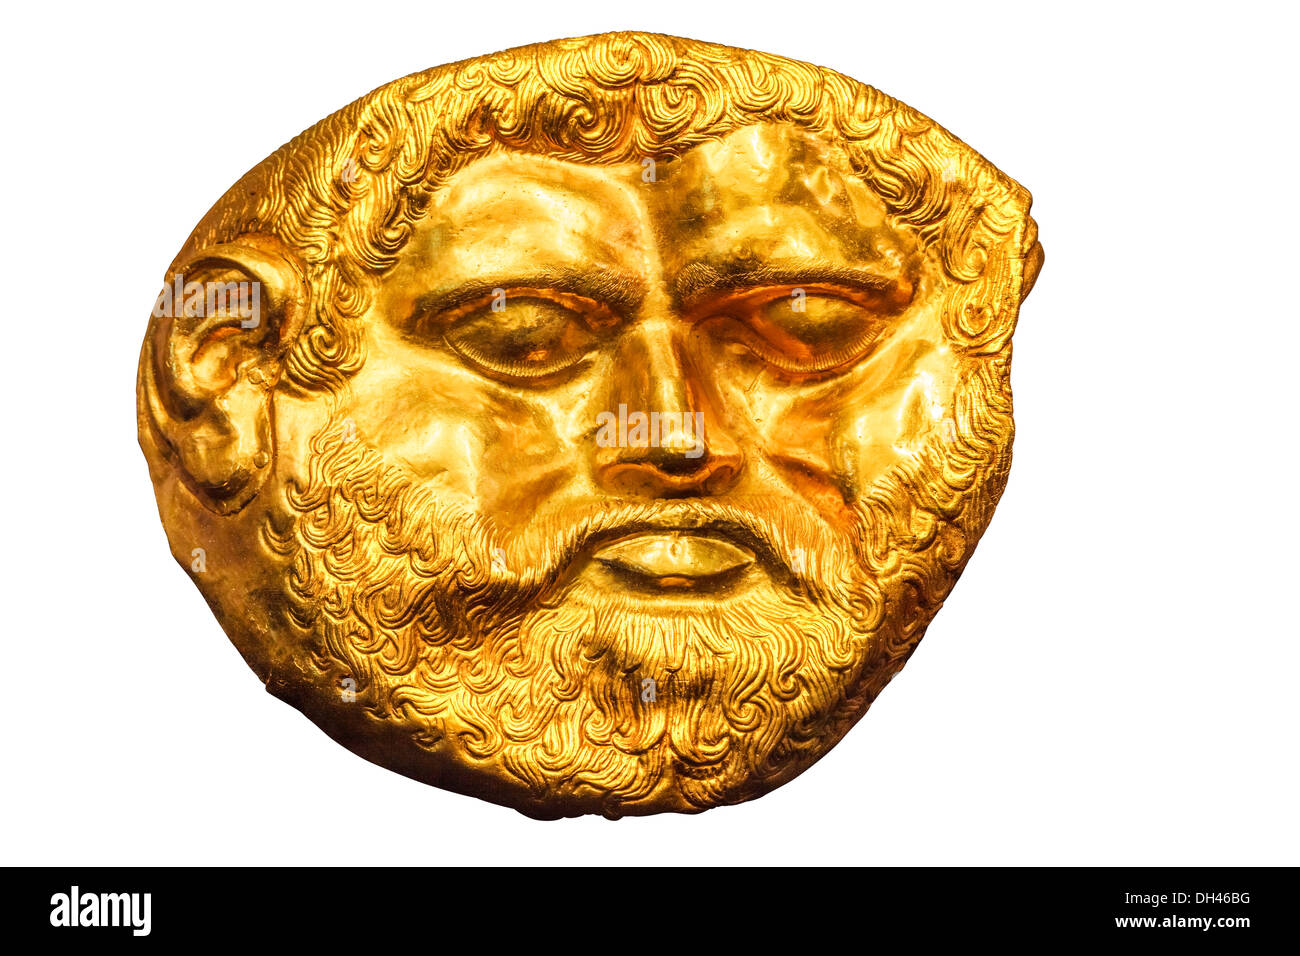 Gold mask of the Thracian king Teres, history museum, Kazanlak, Bulgaria - Stock Image